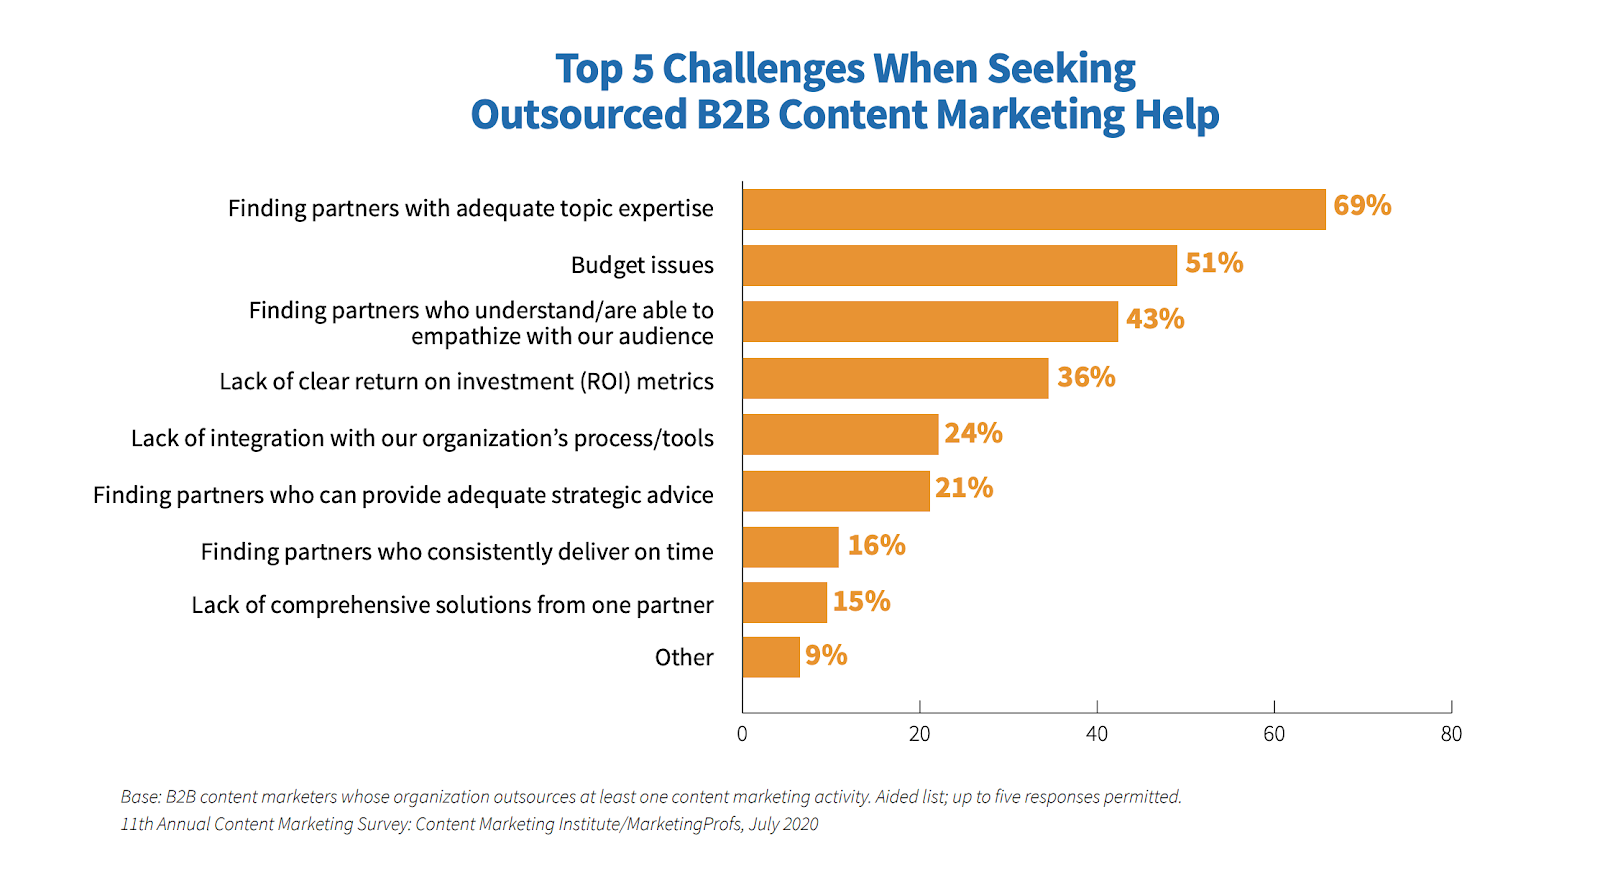 Top 5 challenges when seeking outsourced B2B content marketing help